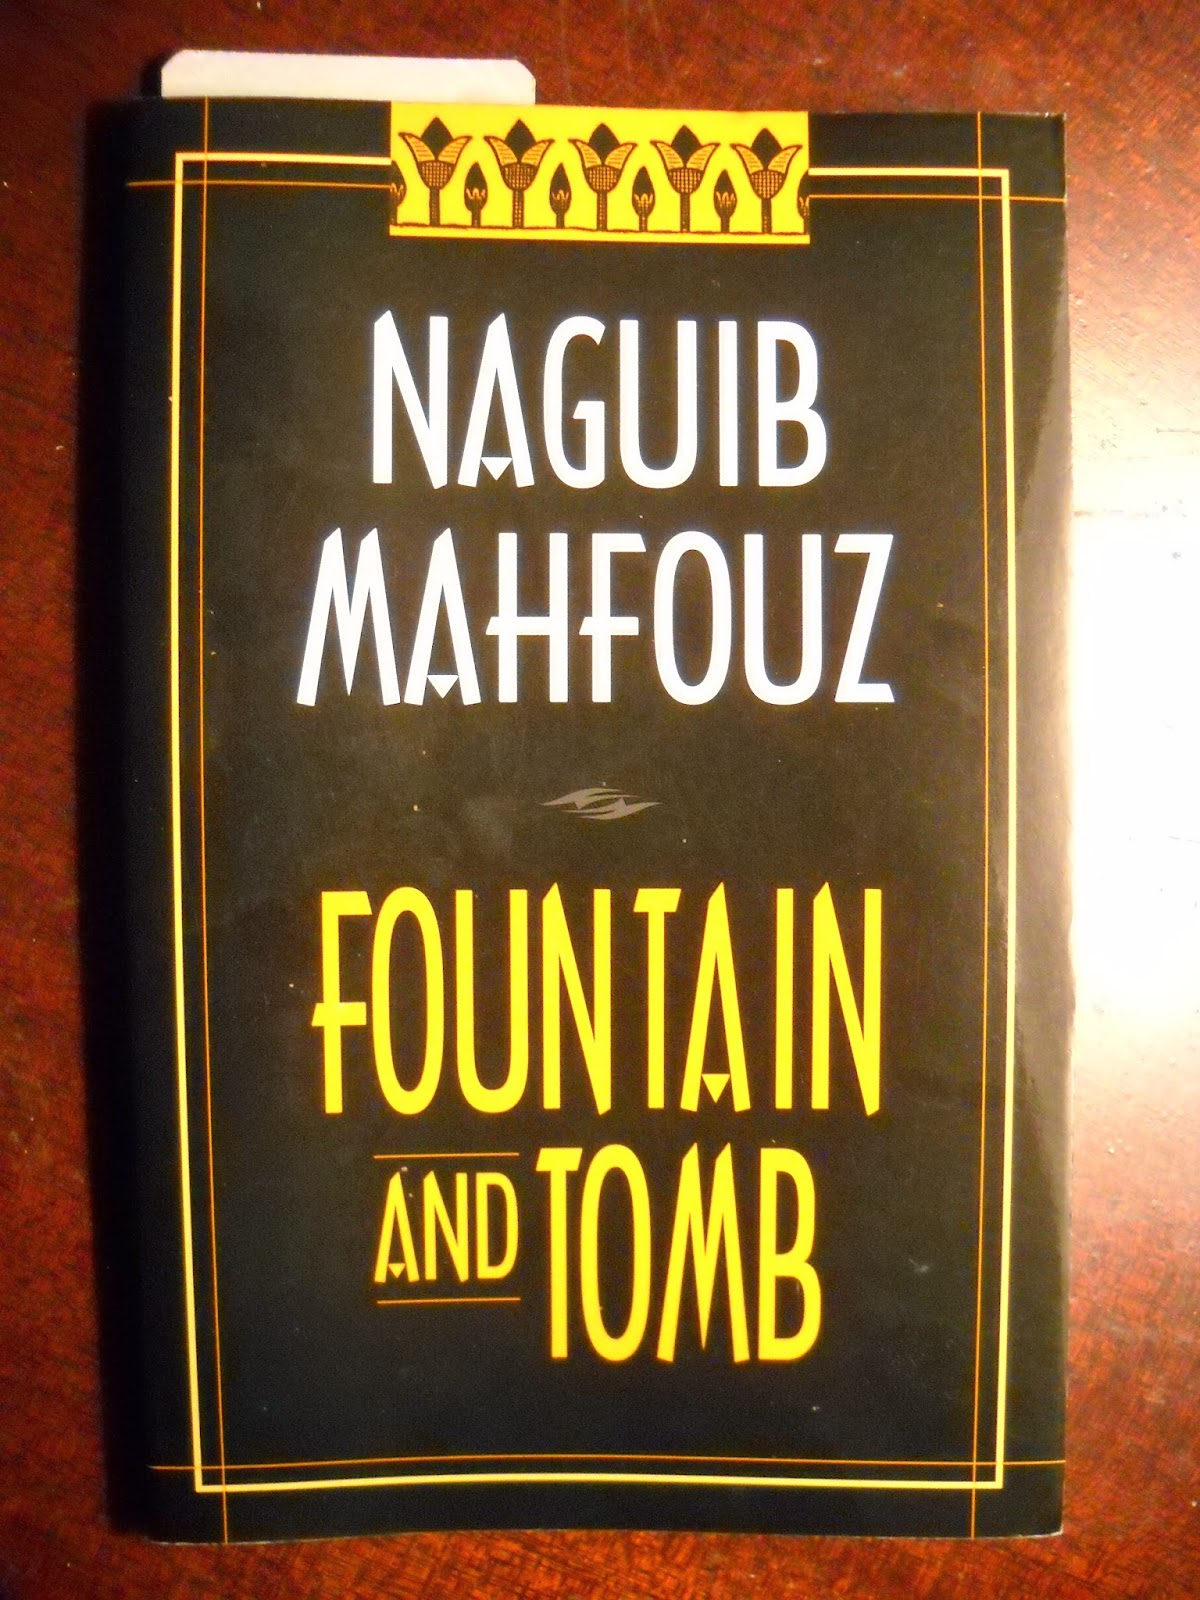 naguib mahfouz fountain and tomb essay Fountain and tomb by najib mahfuz, 9780894105814 naguib mahfouz, translated by essam fattouh, translated by james.